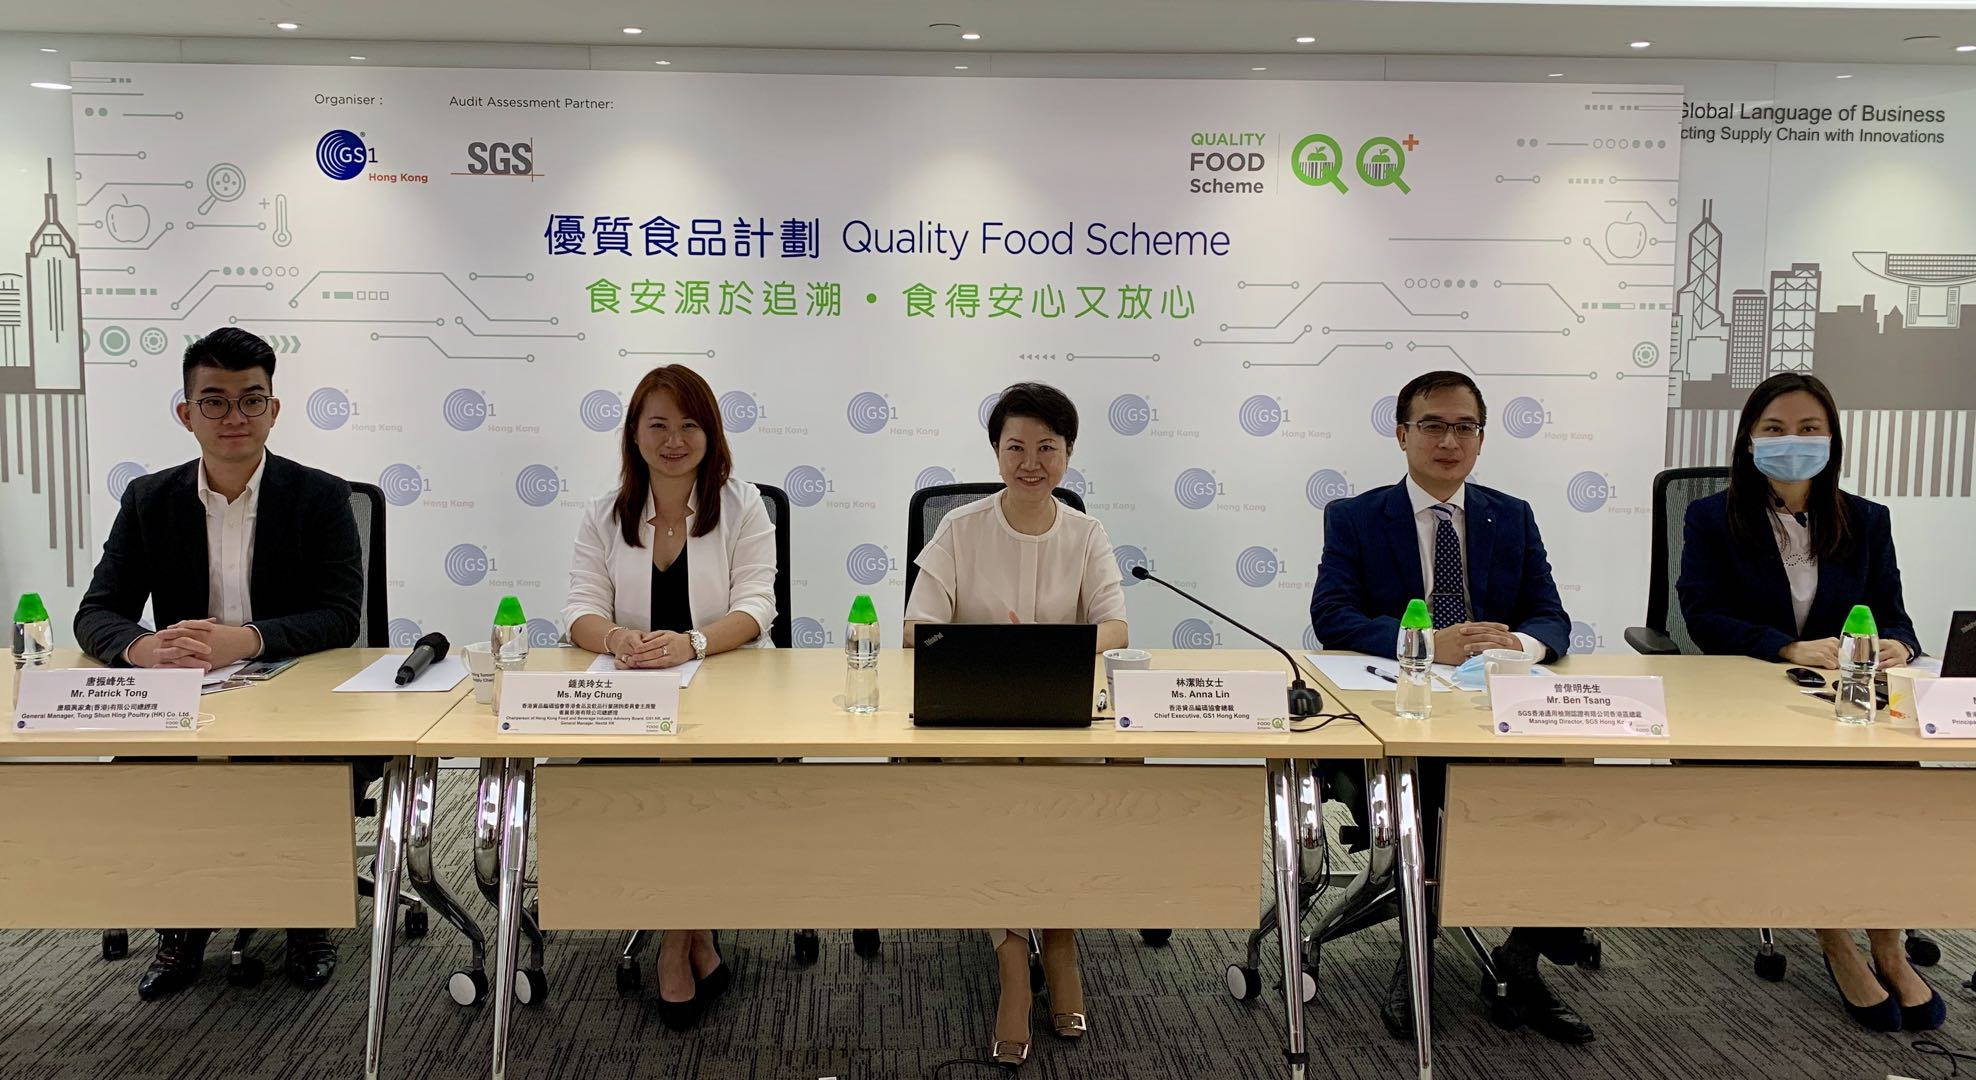 GS1 Hong Kong Launches Quality Food Scheme+